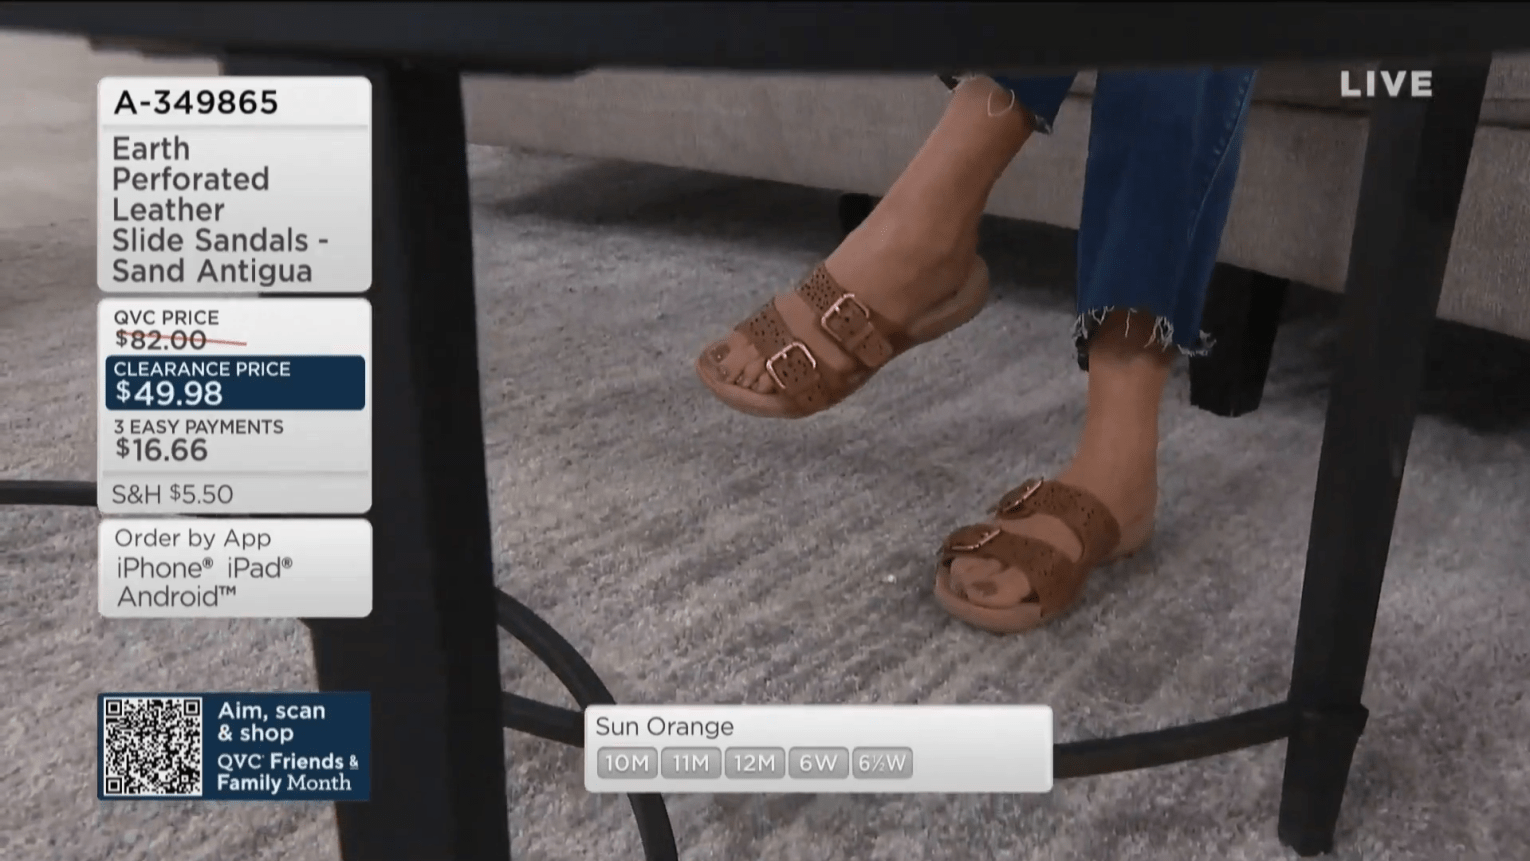 Close-up shot of QVC show host Courtney Khondabi's feet during an on-air presentation.